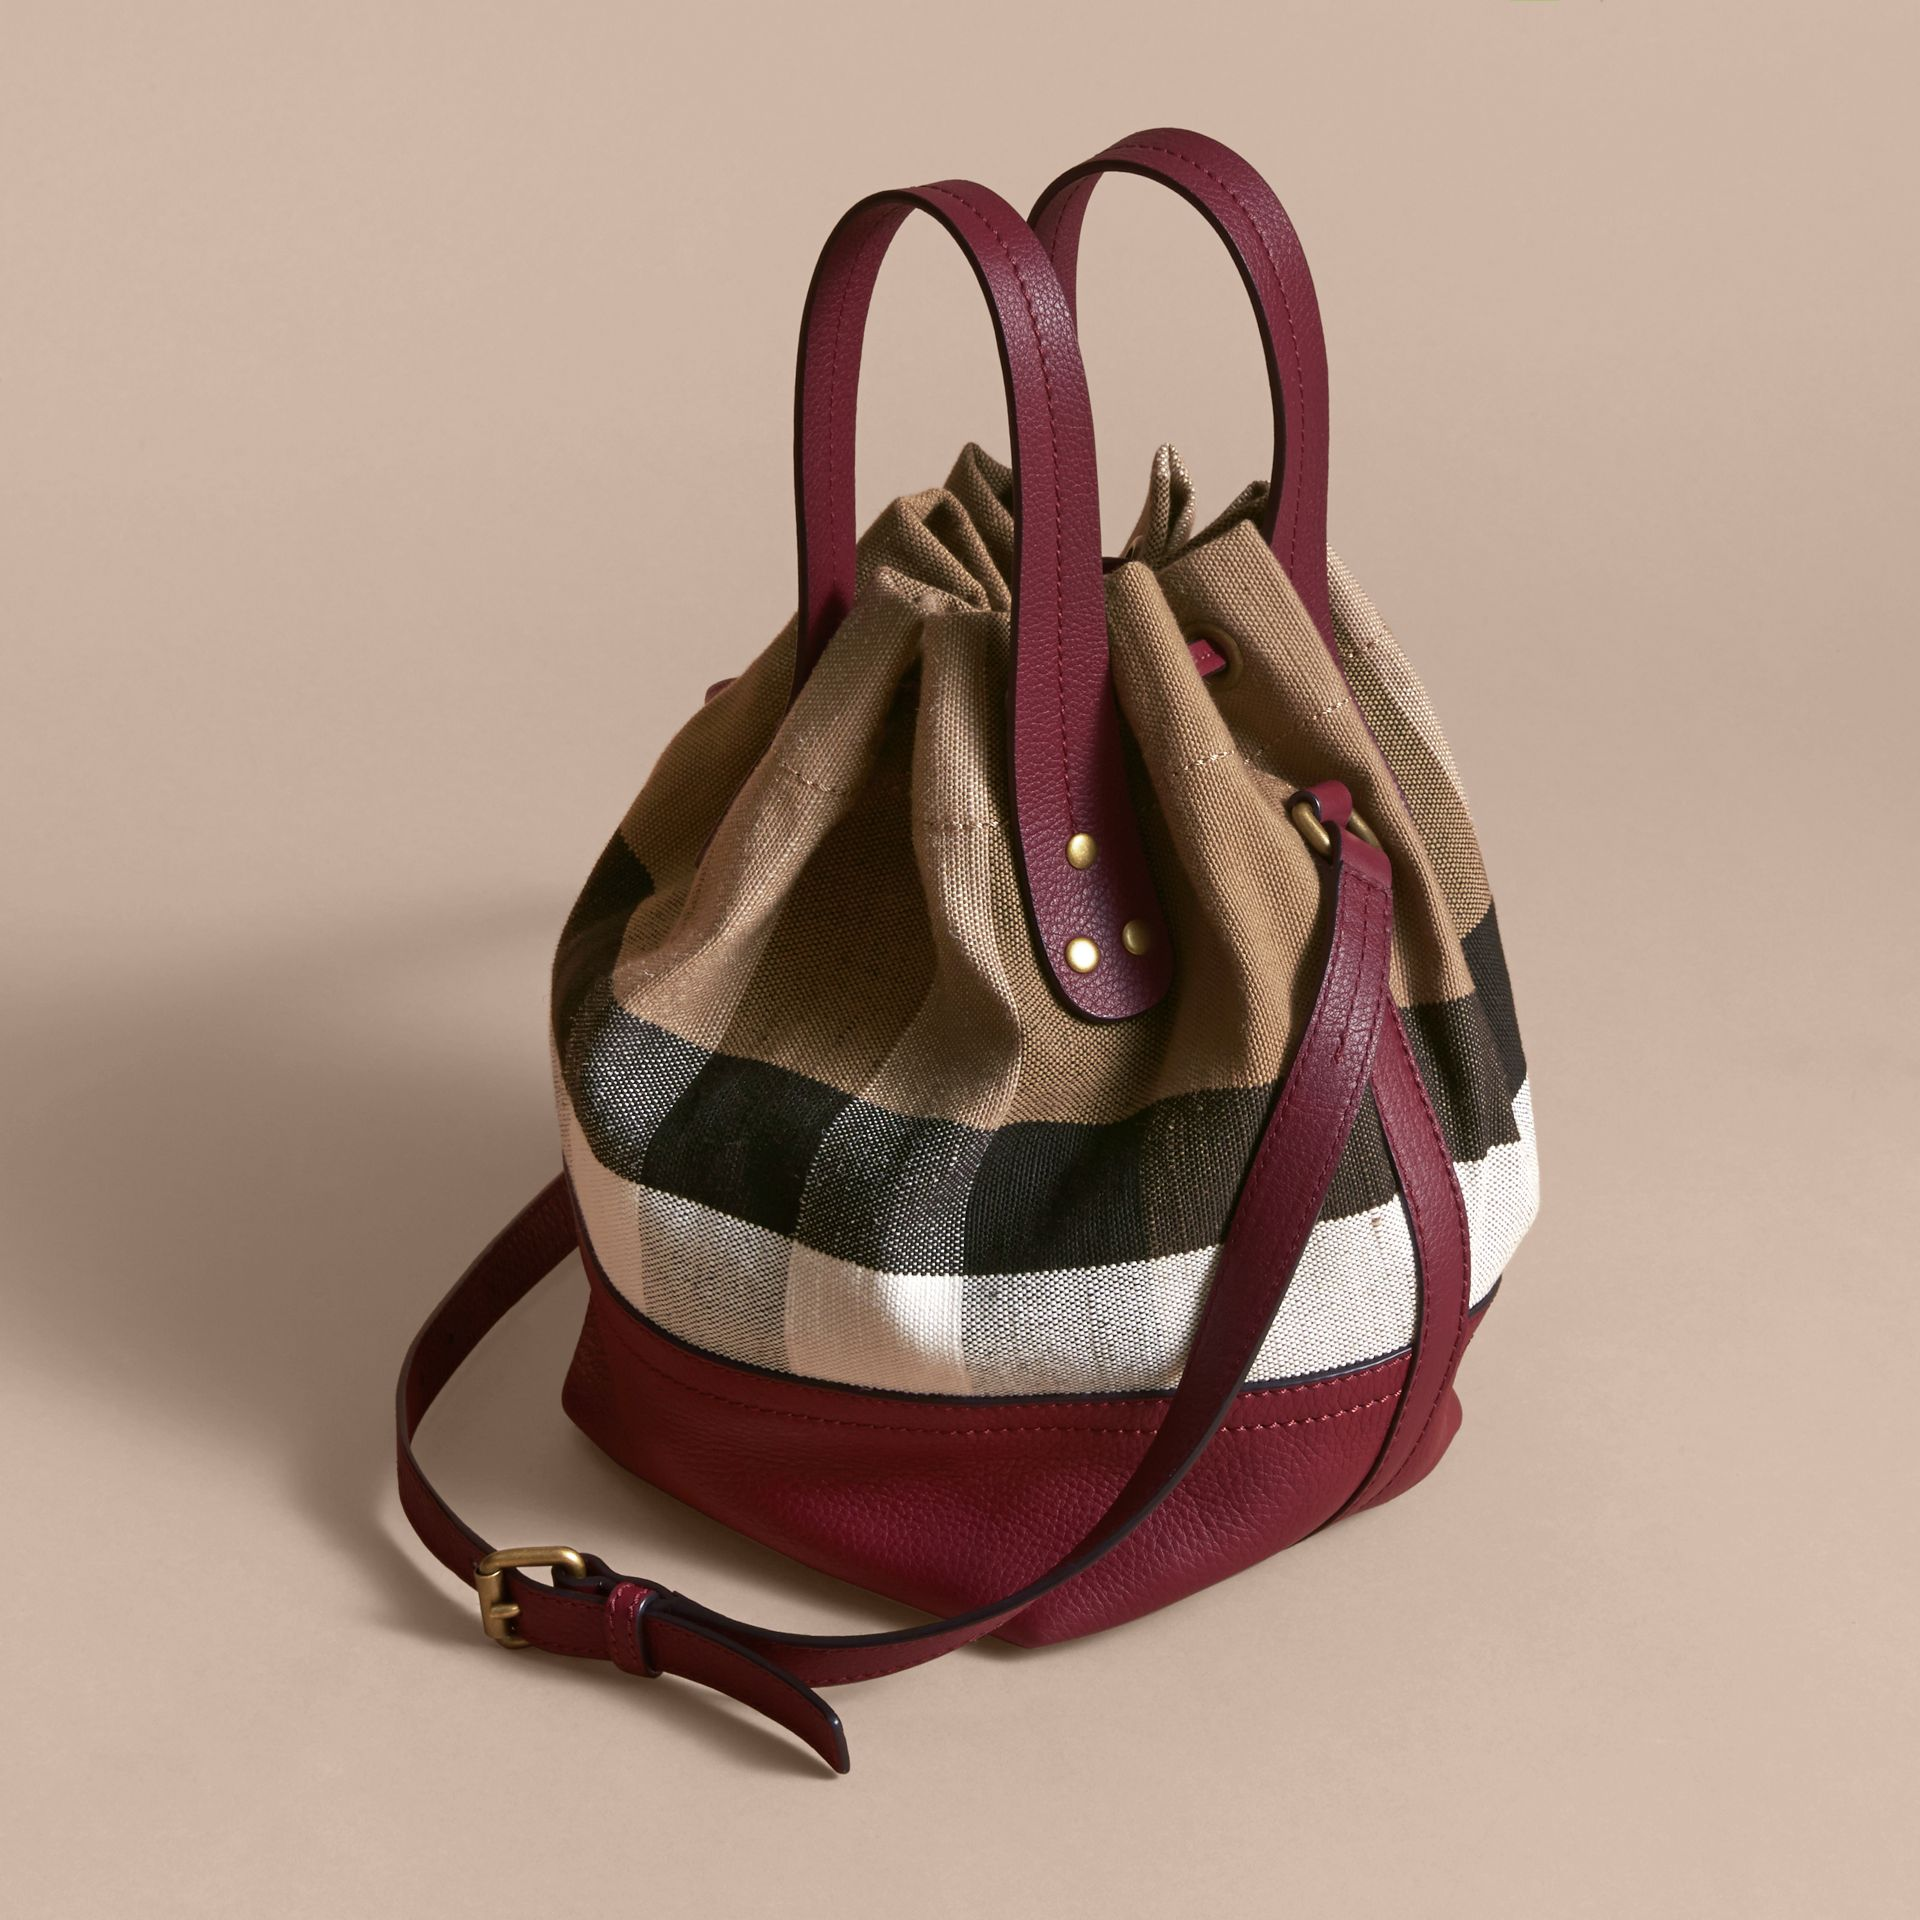 Small Canvas Check and Leather Bucket Bag in Burgundy Red - Women | Burberry - gallery image 5